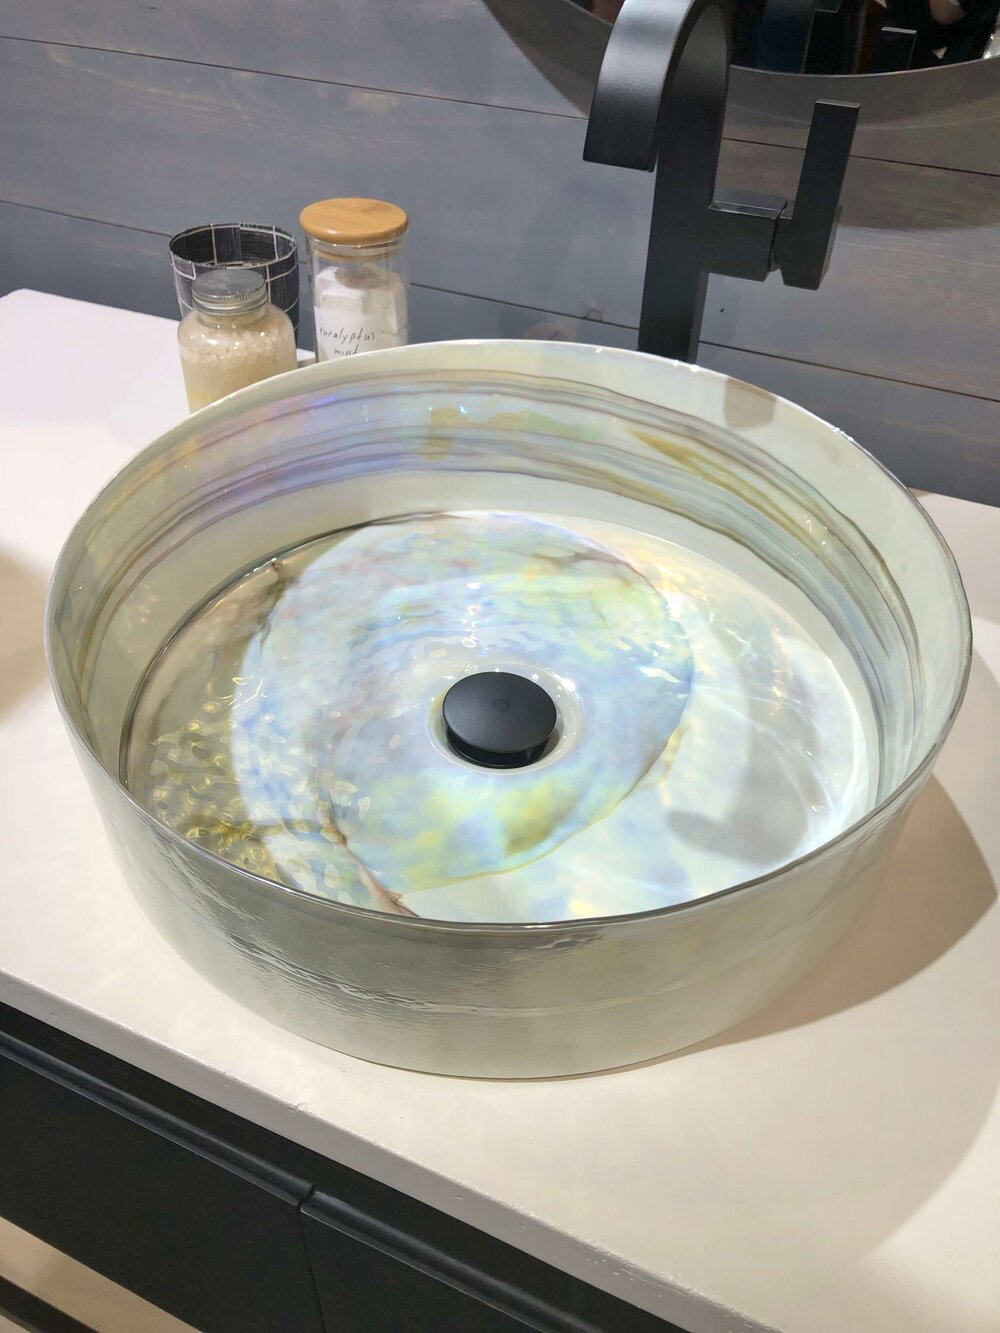 Murano glass vessel sink with an opaline look finish by Native Trails